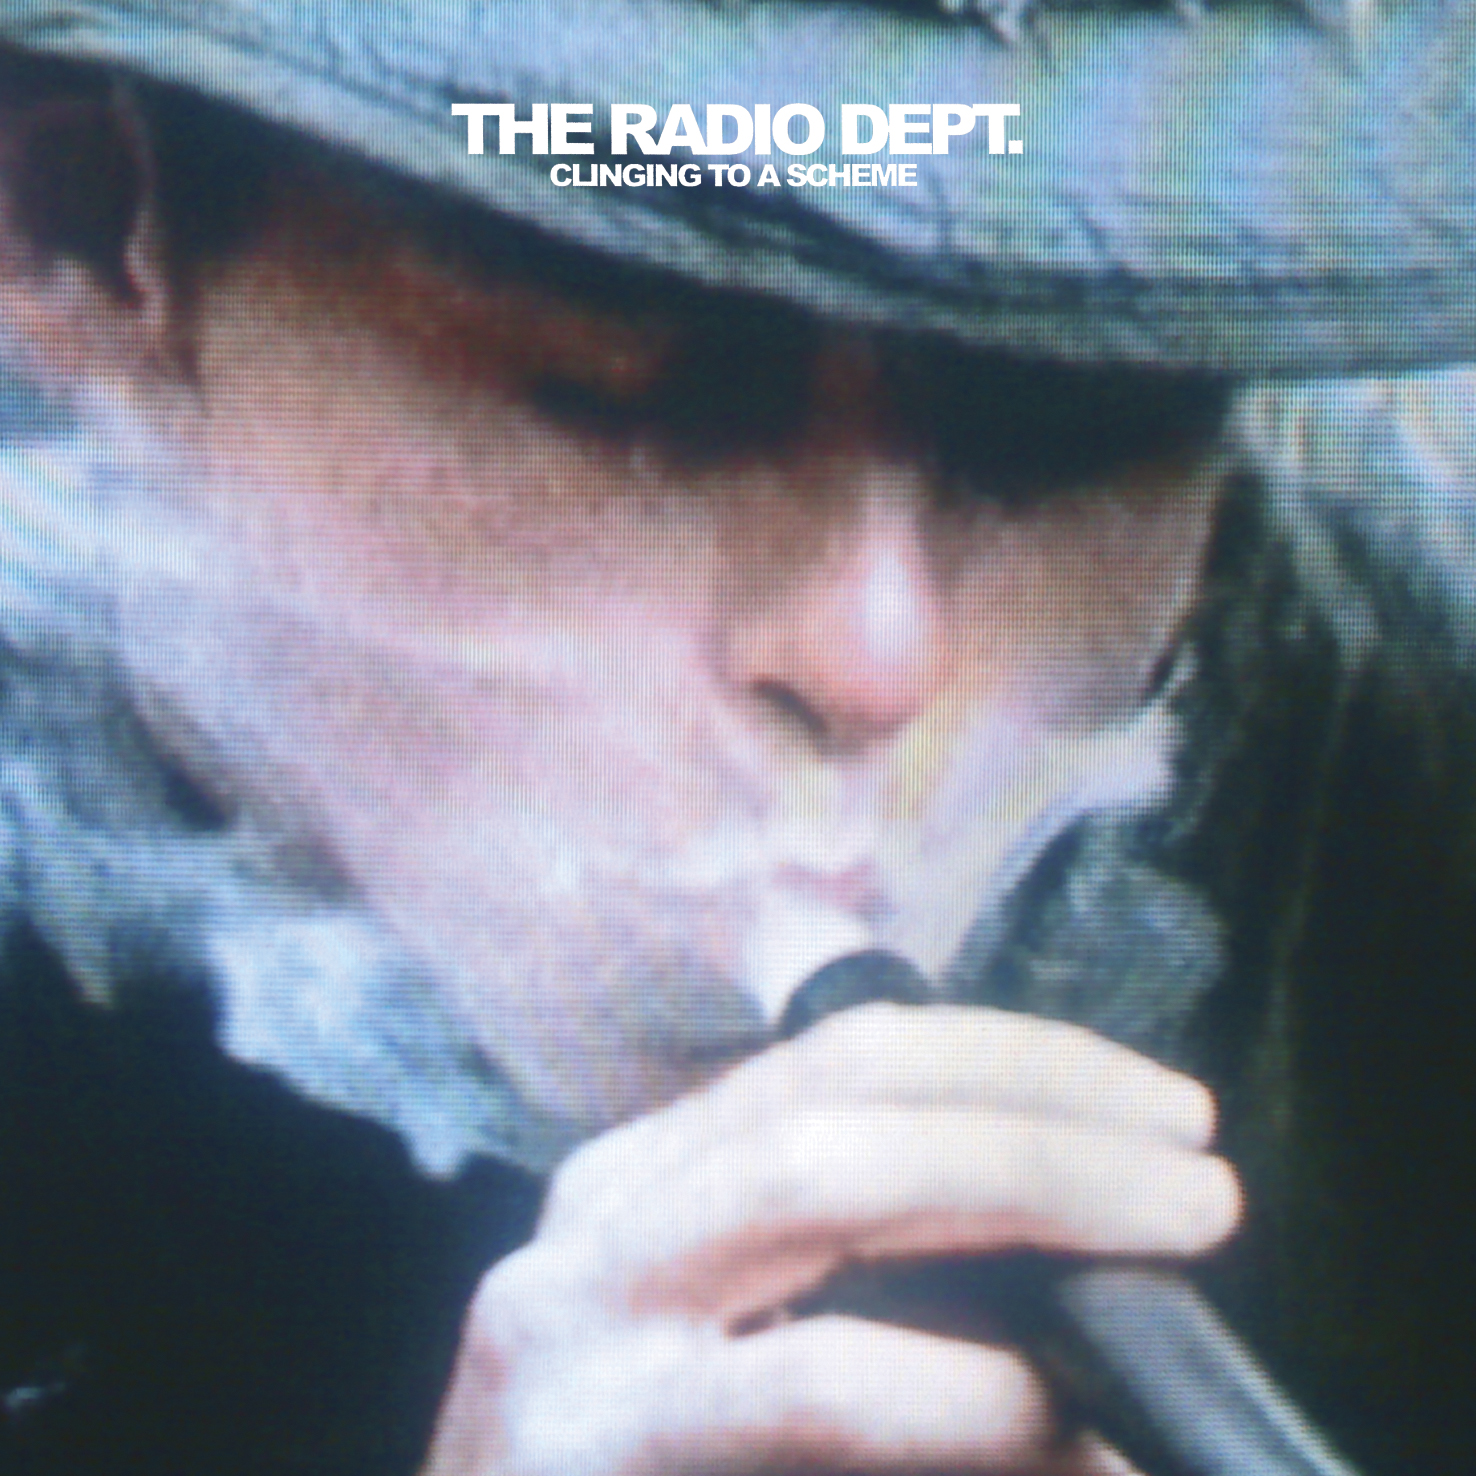 Clinging To A Scheme, nuevo disco de The Radio Dept. en marzo